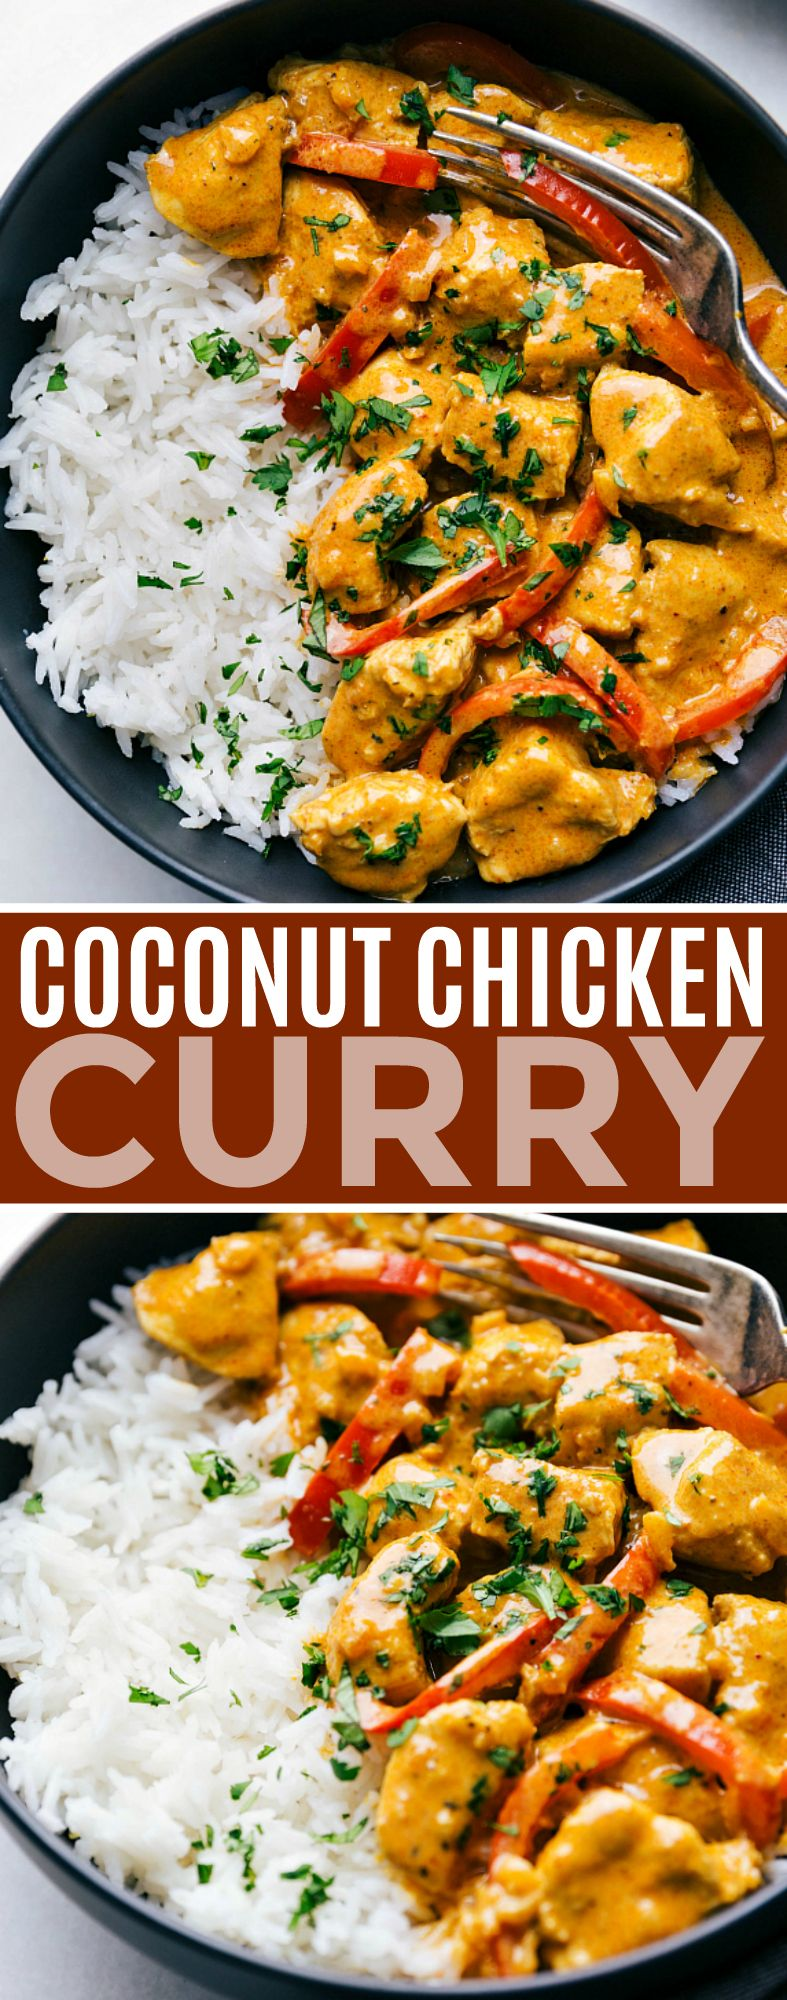 Coconut Chicken Curry #indianfood